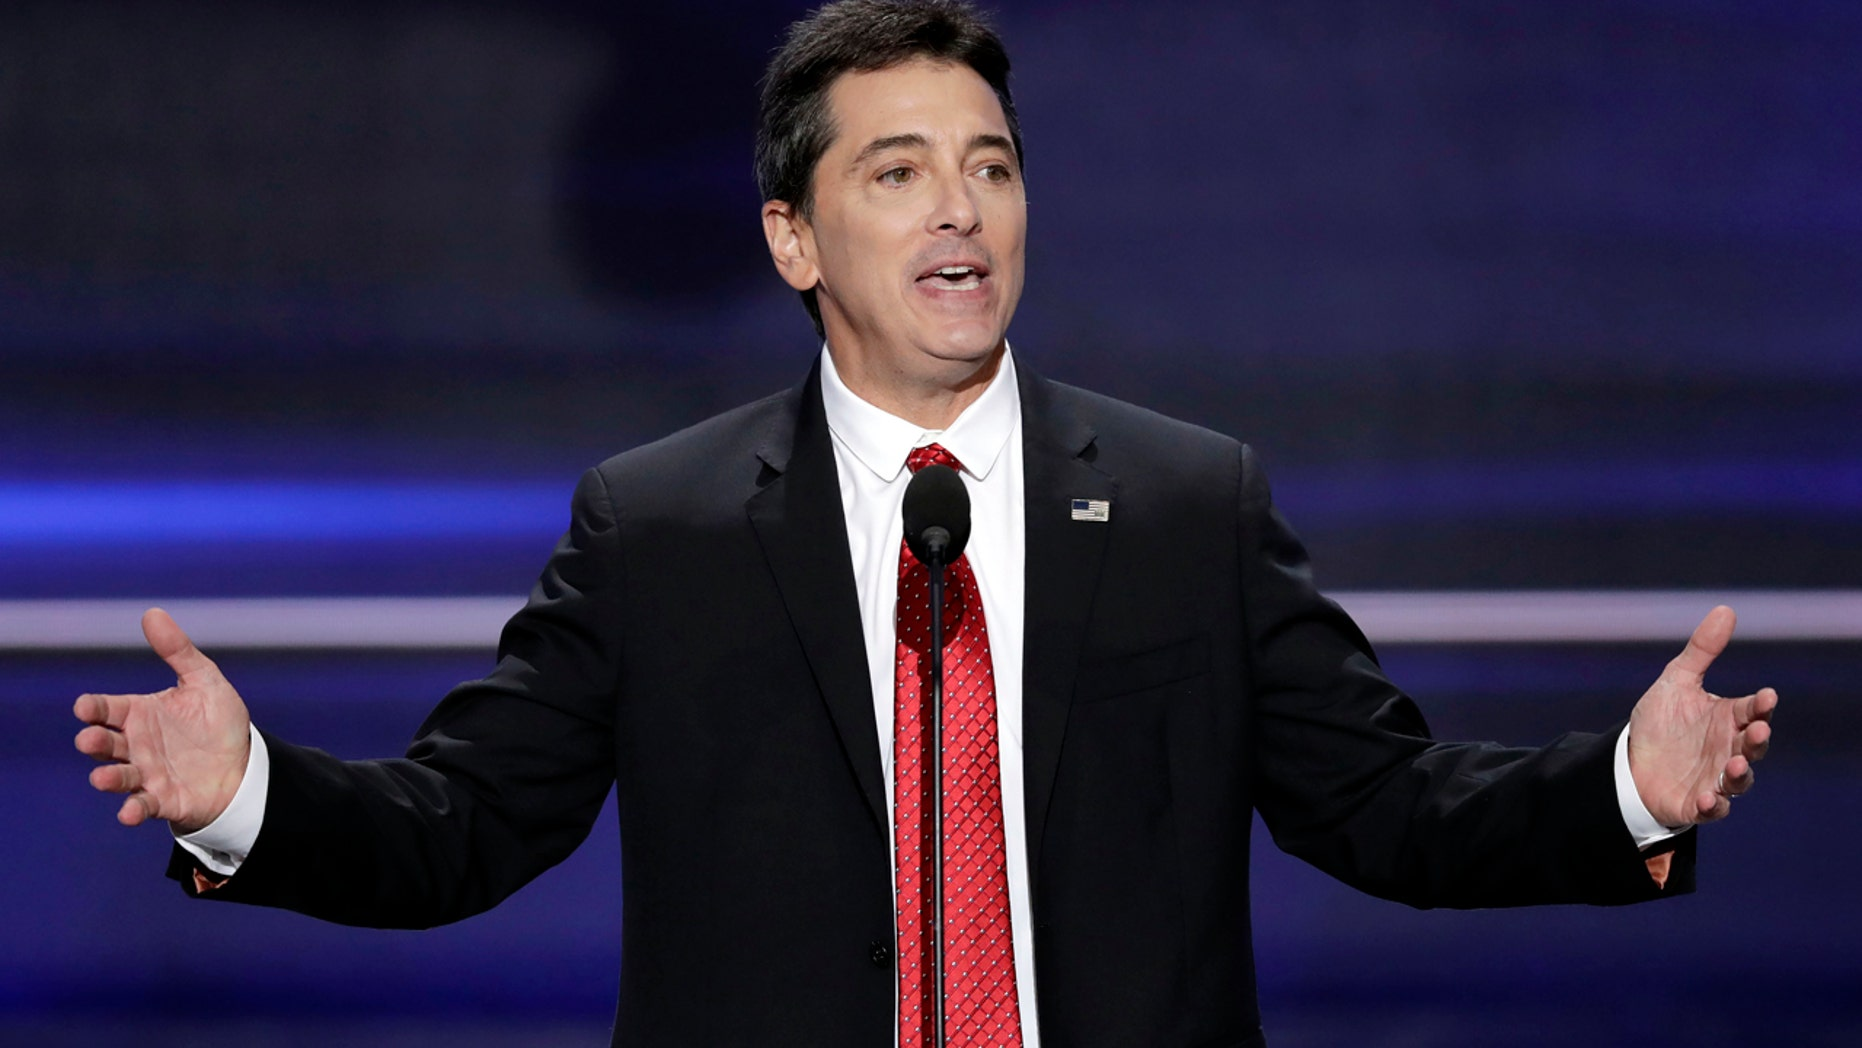 Prosecutors decline to charge Scott Baio in sexual assault charges filed against him by his former TV co-star, Nicole Eggert.